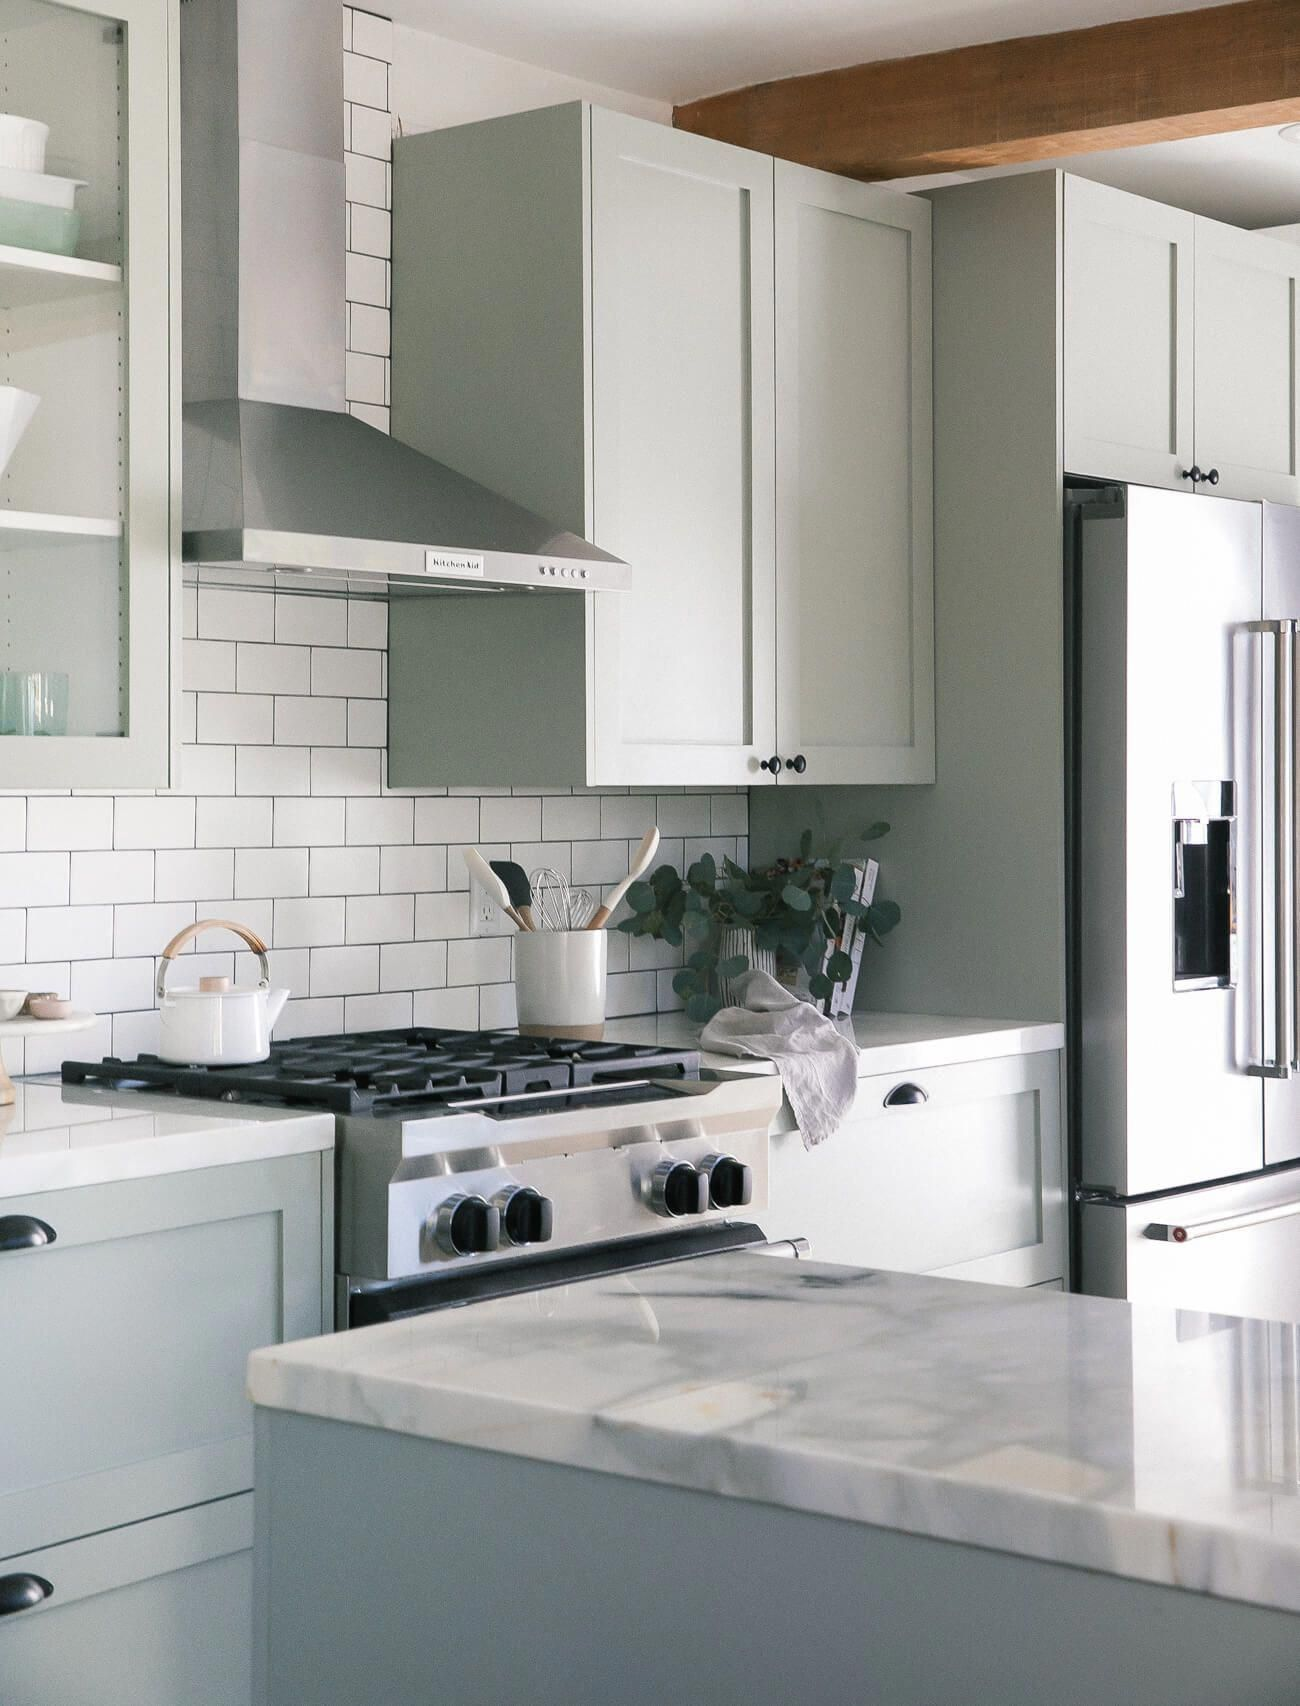 A Cozy Kitchen Renovation Review on Ikea with